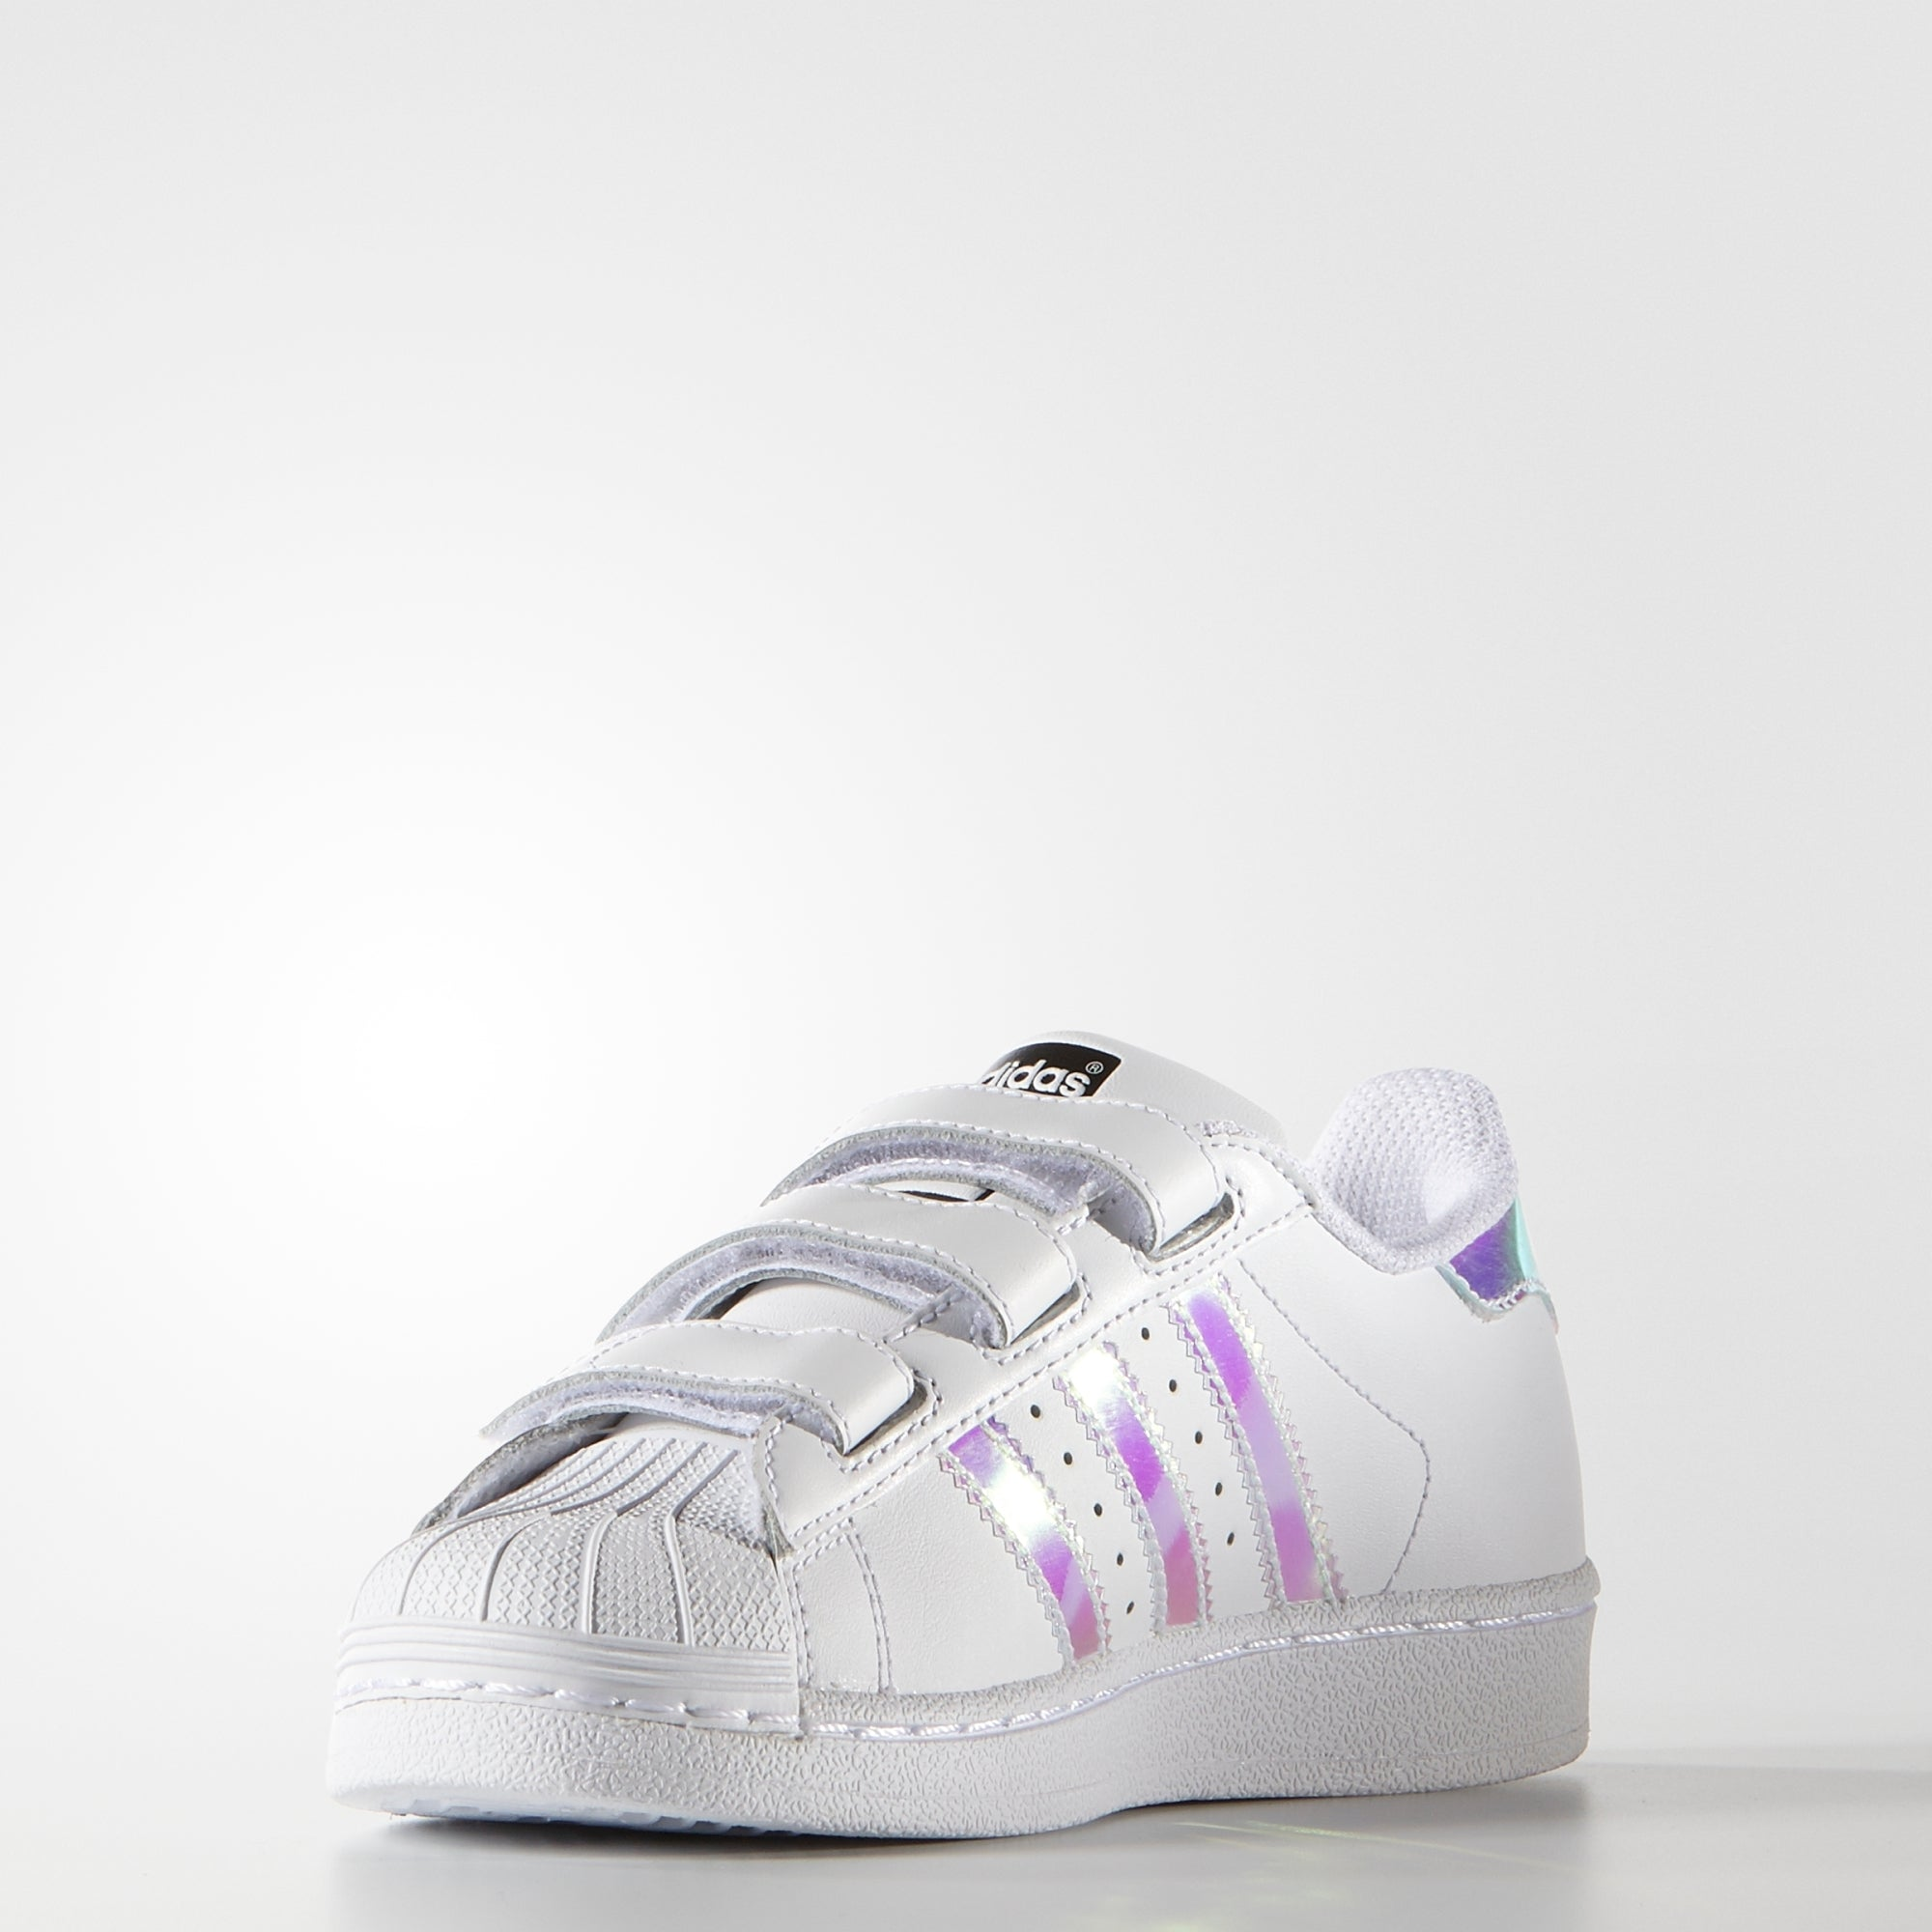 eda861a8168e ... Kid s adidas Originals Superstar Velcro Shoes White Hologram Iridescent.  1 special section 25f05 78523 ...